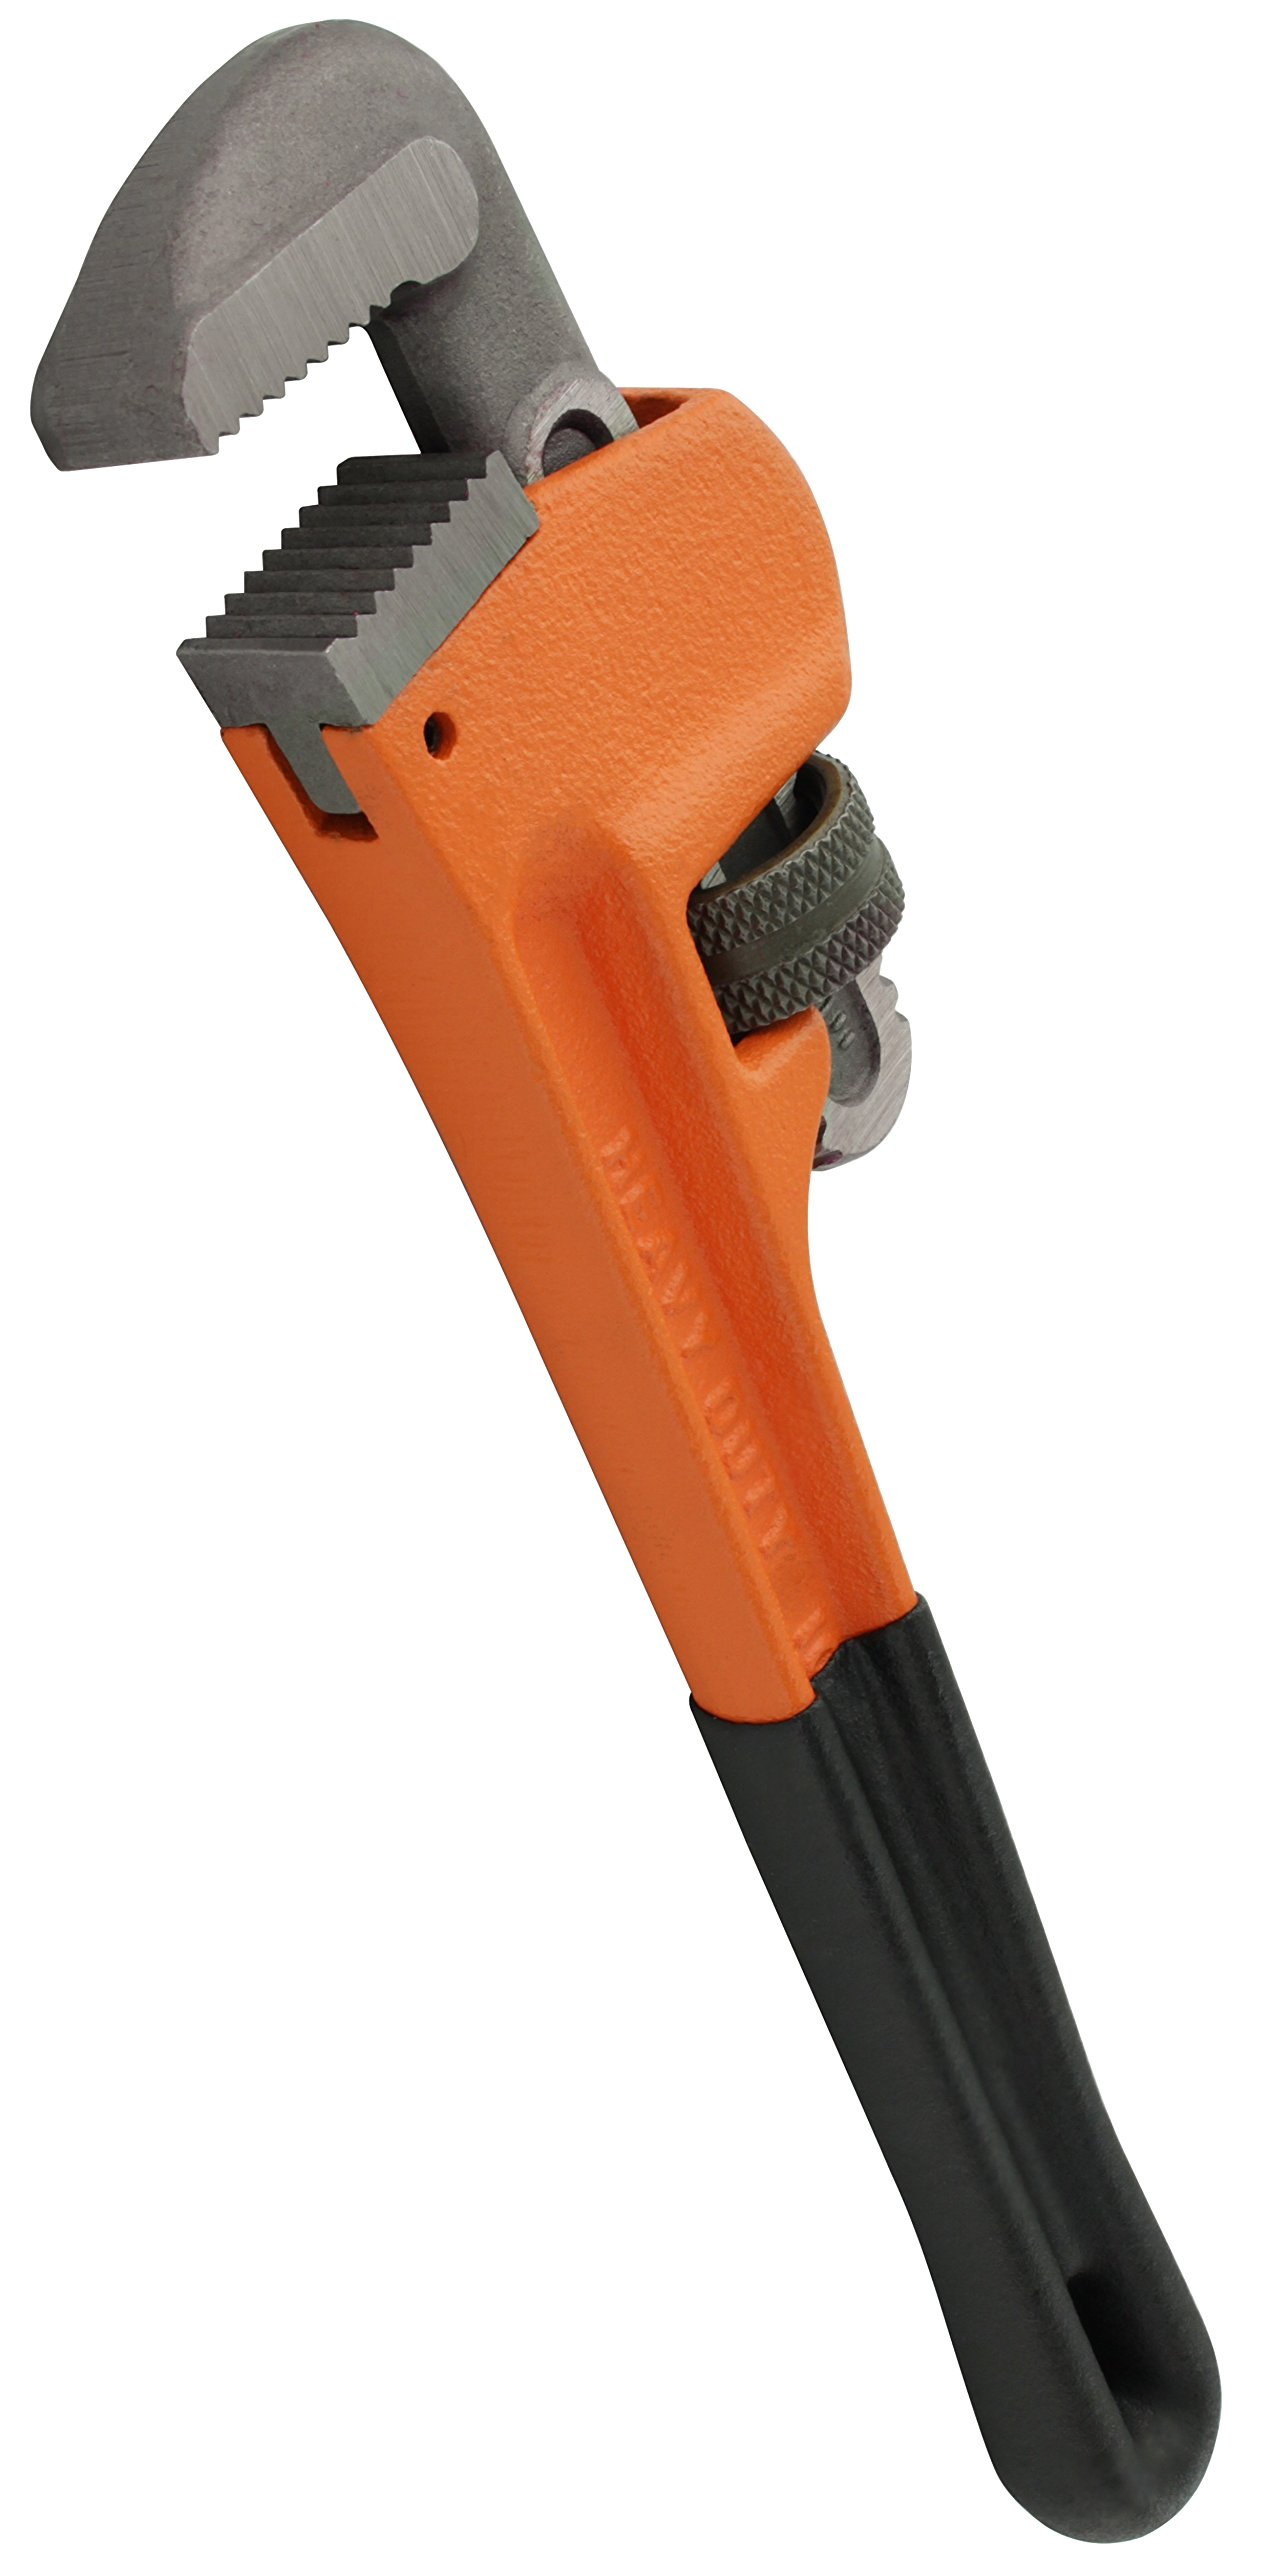 Drixet Heavy Duty 10'' Pipe Wrench | General Purpose Industrial Tool Made of Drop Forged Heat Treated Steel Jaws & Nuts